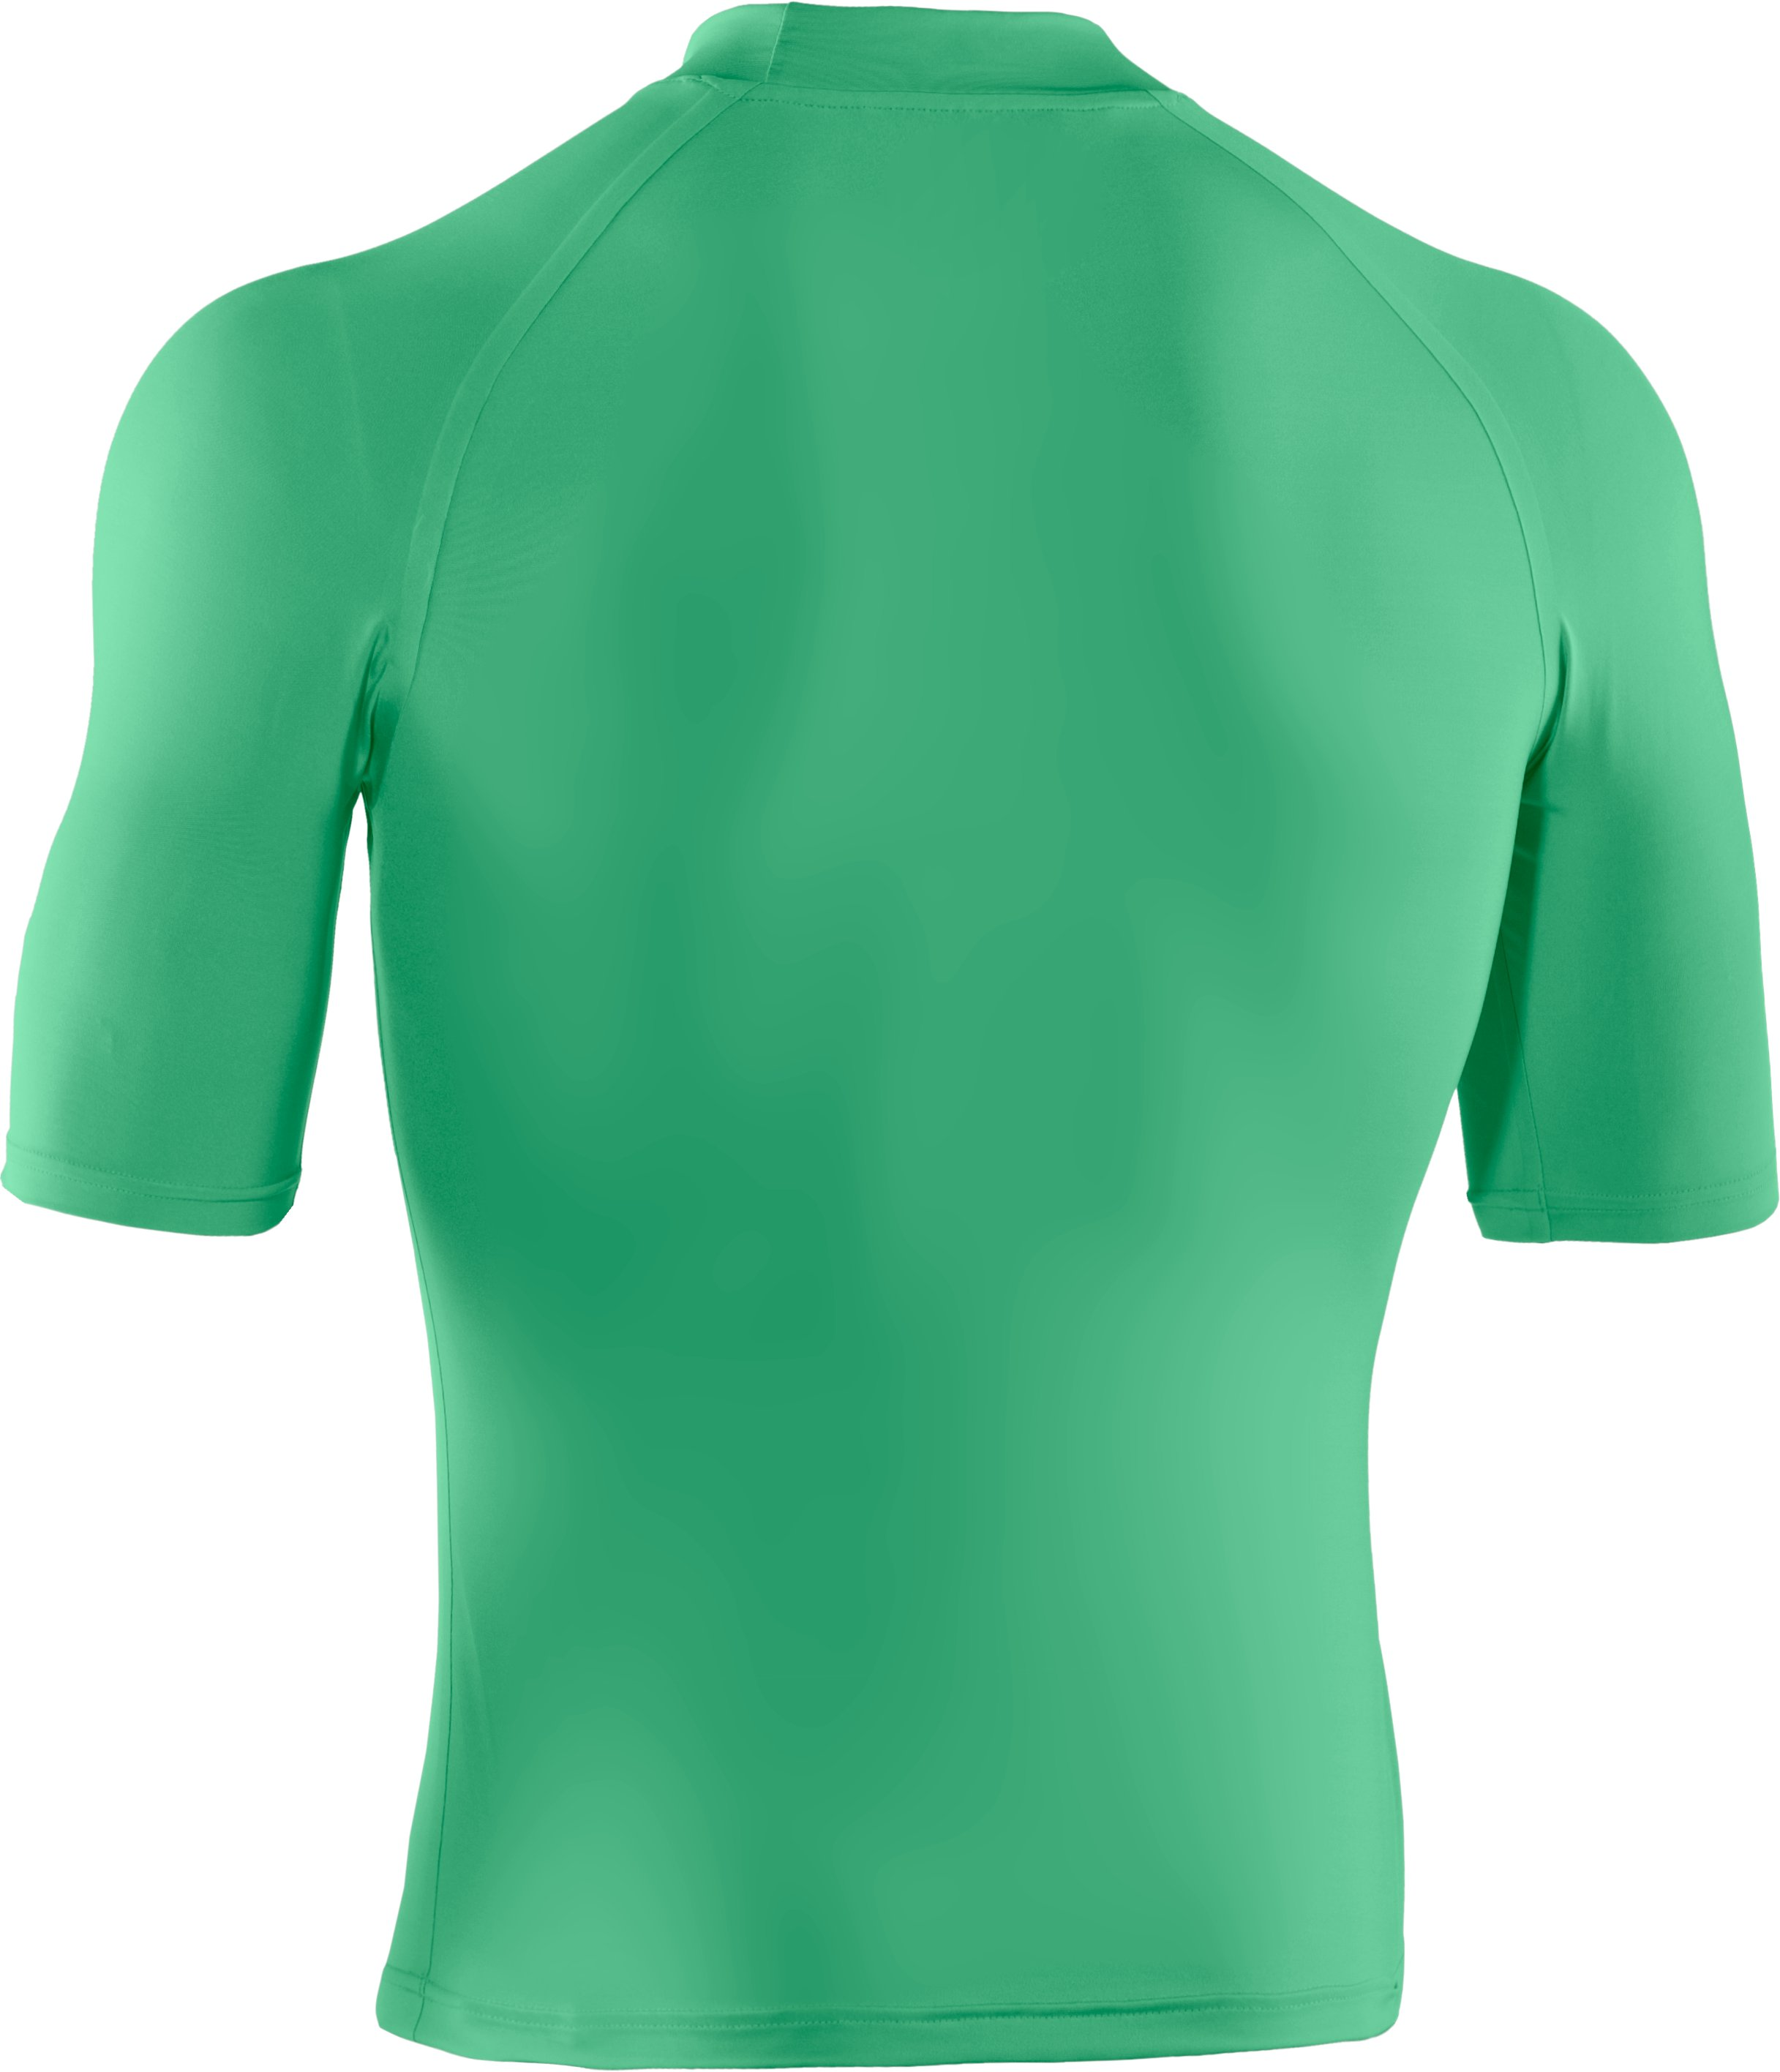 Men's Proaid Rash Guard, Ribbit, undefined